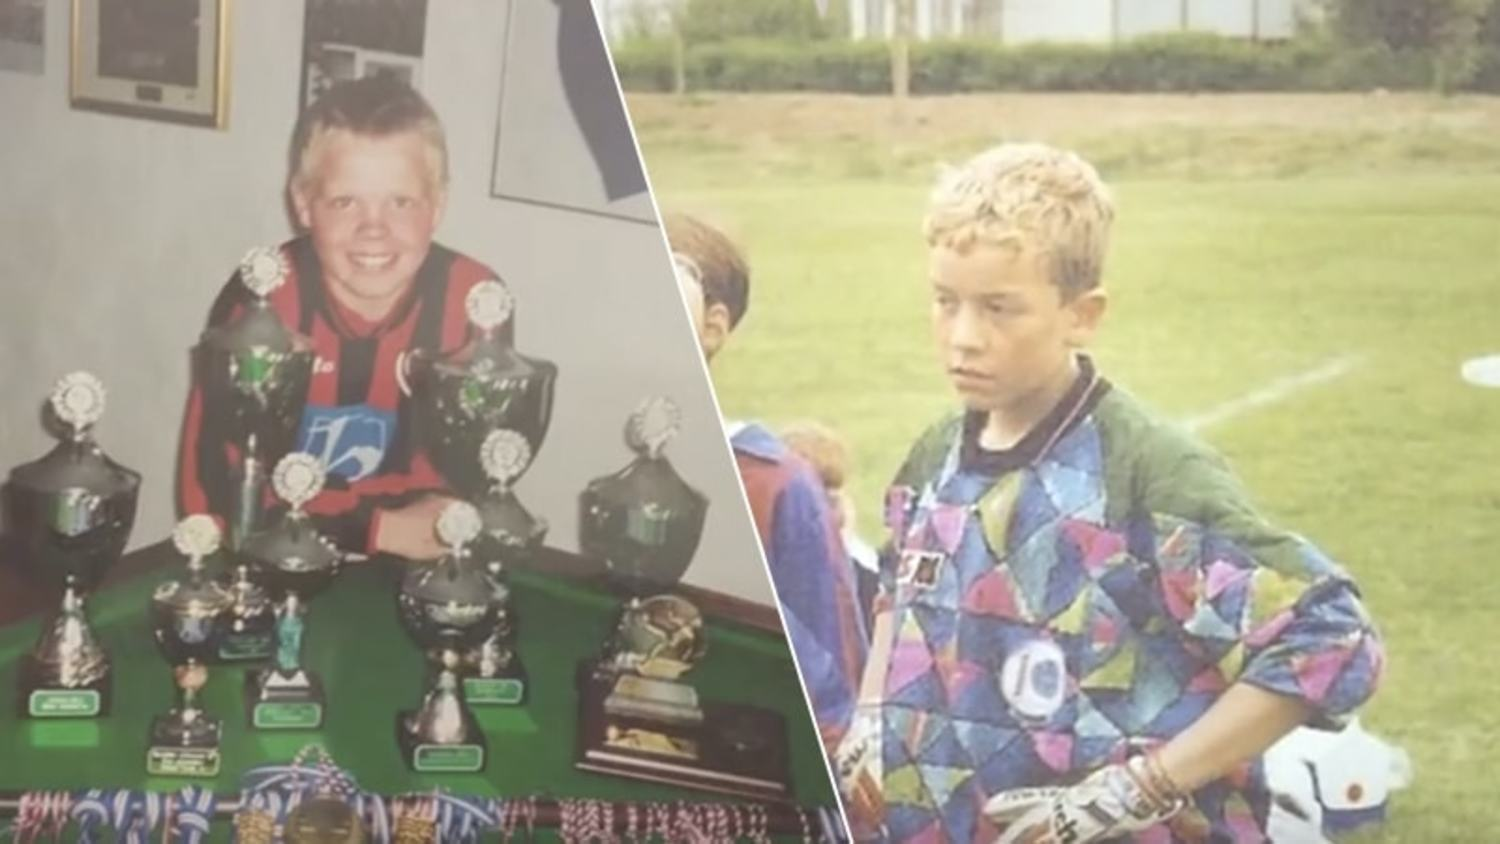 Iceland Release Euro 2016 Promo Video Featuring Their Stars as Youngsters